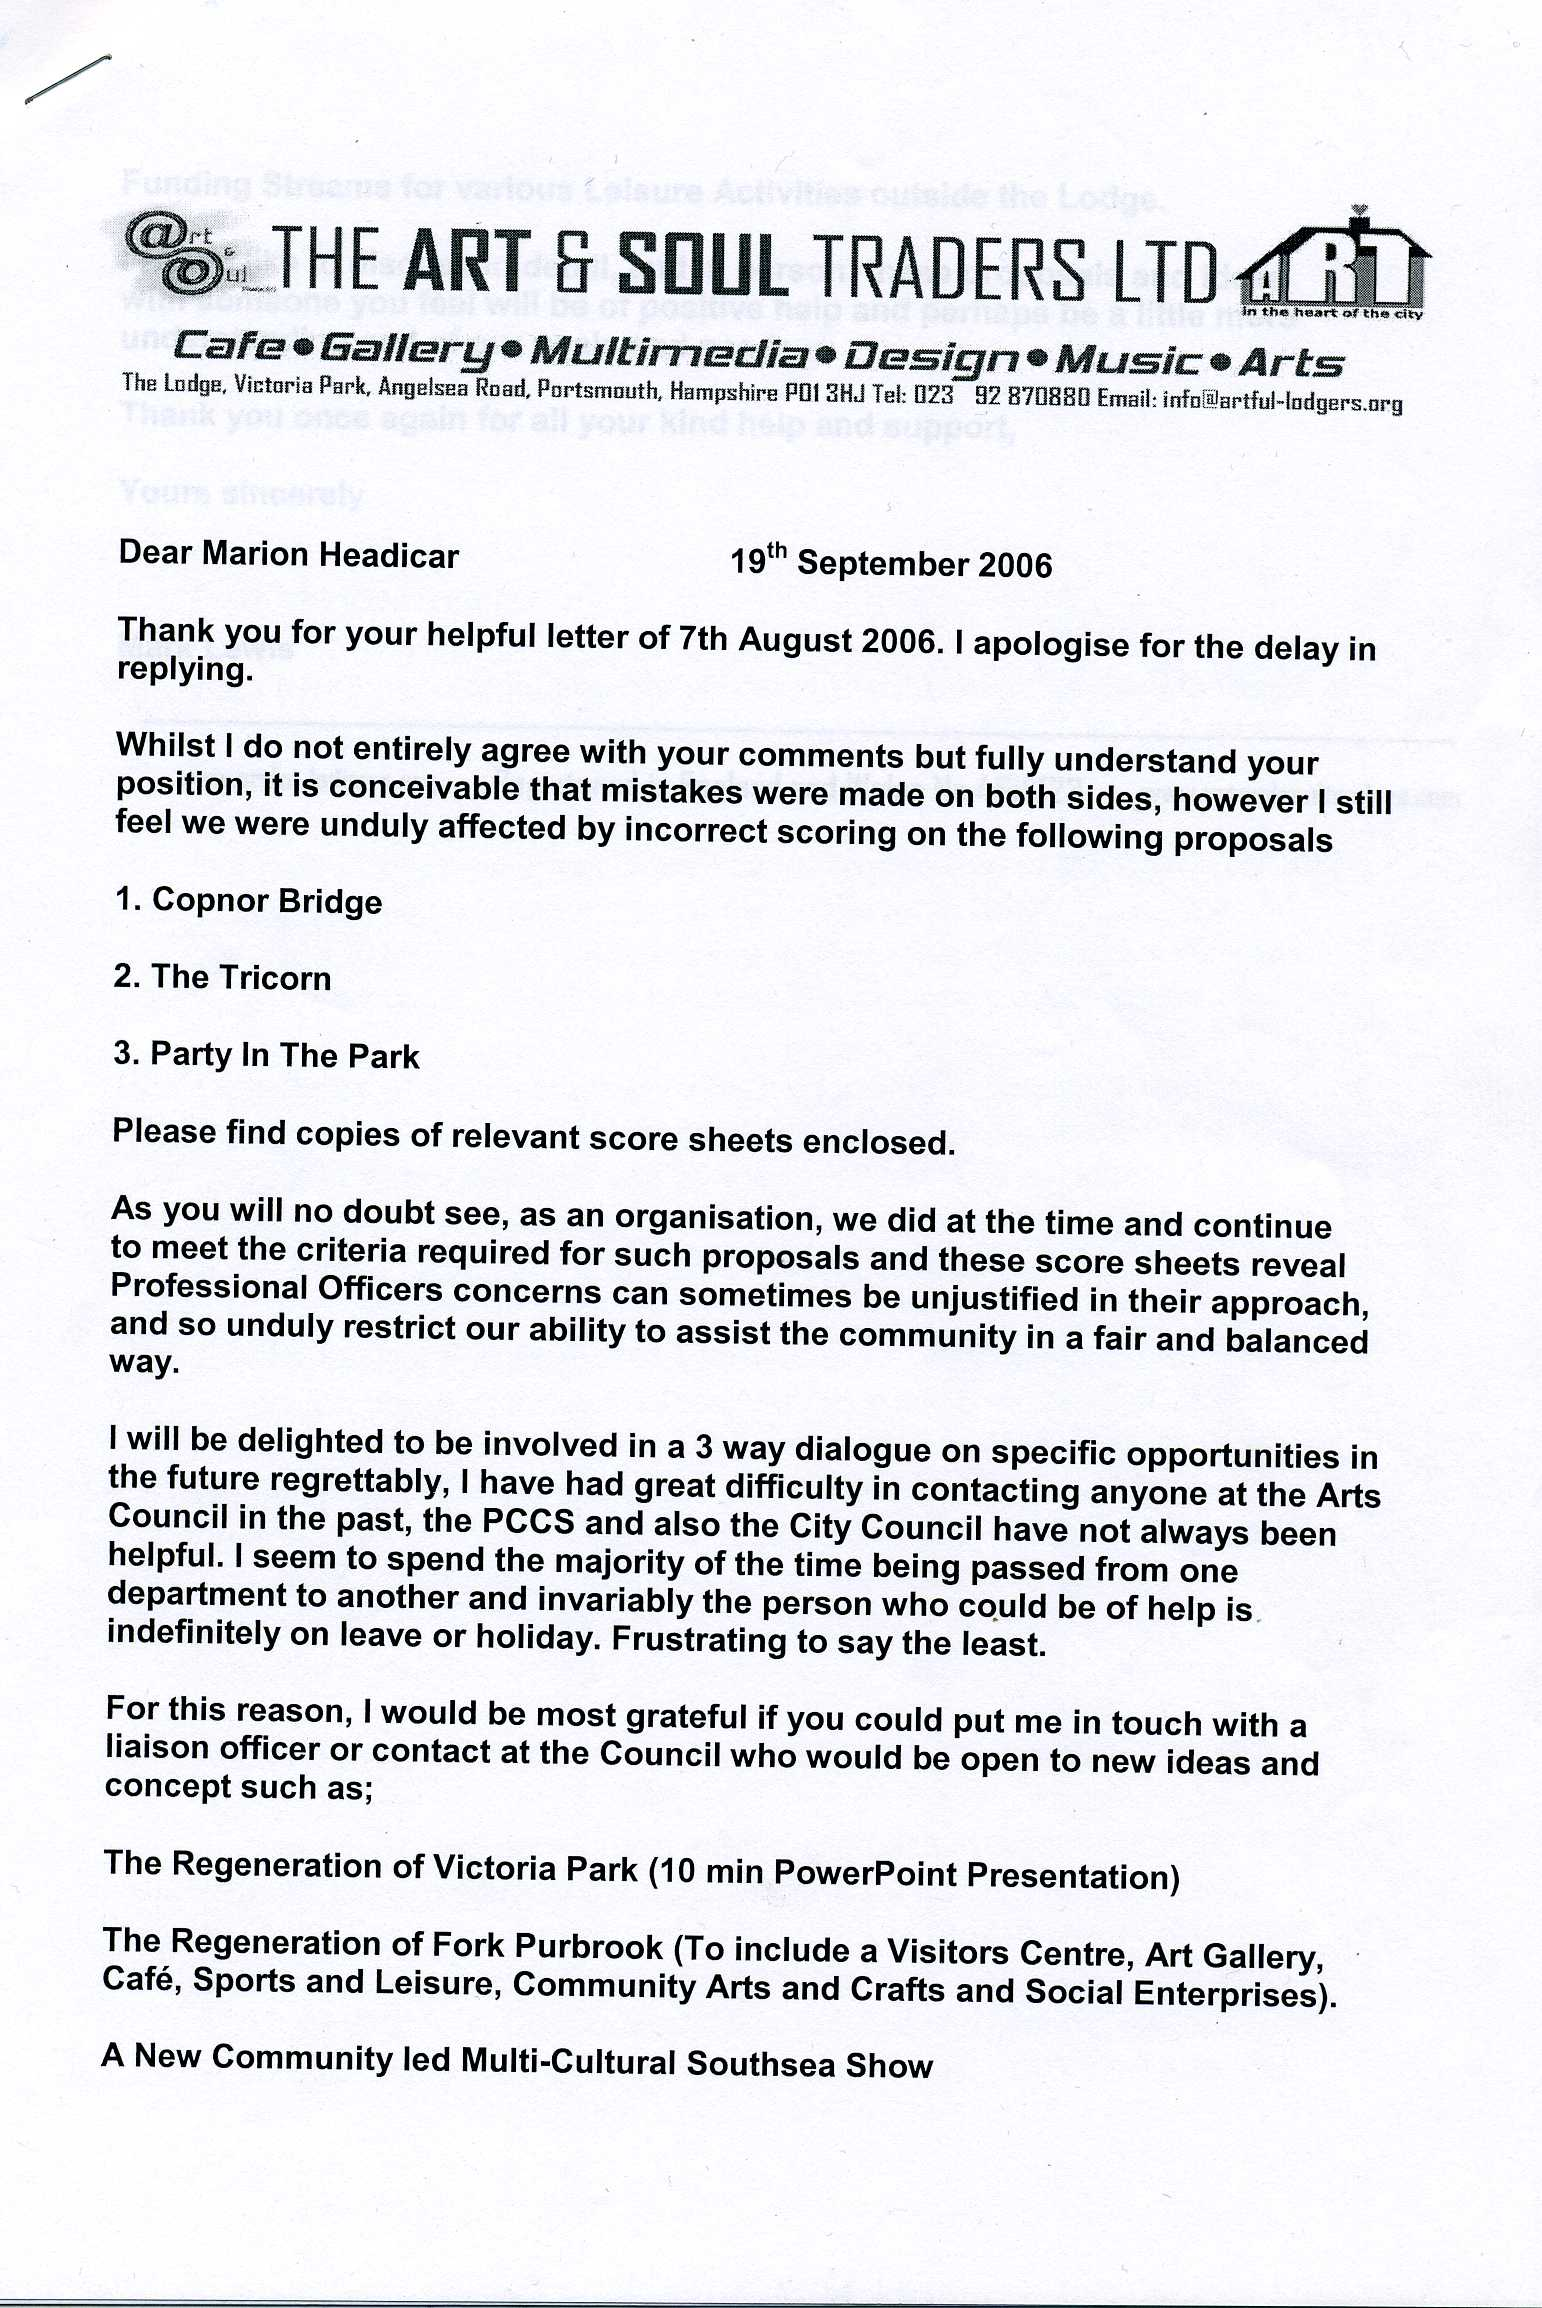 Our reply to Marion Headicar page 1